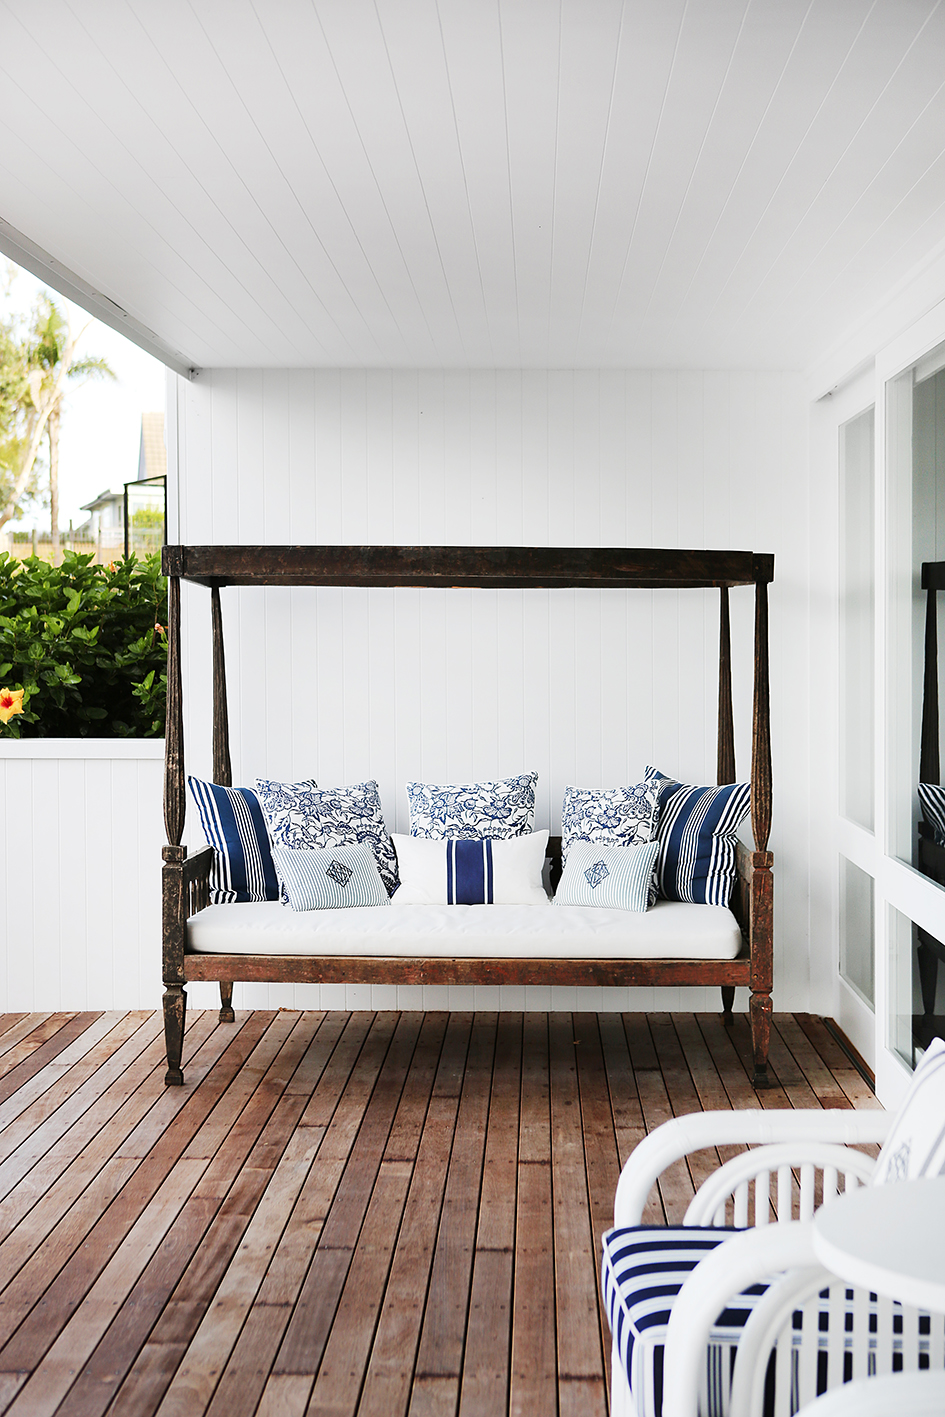 Collette Dinnigan Launches Amazing Penthouses At Bannisters By The Sea Collette Dinnigan Launches Amazing Penthouses At Bannisters By The Sea new foto